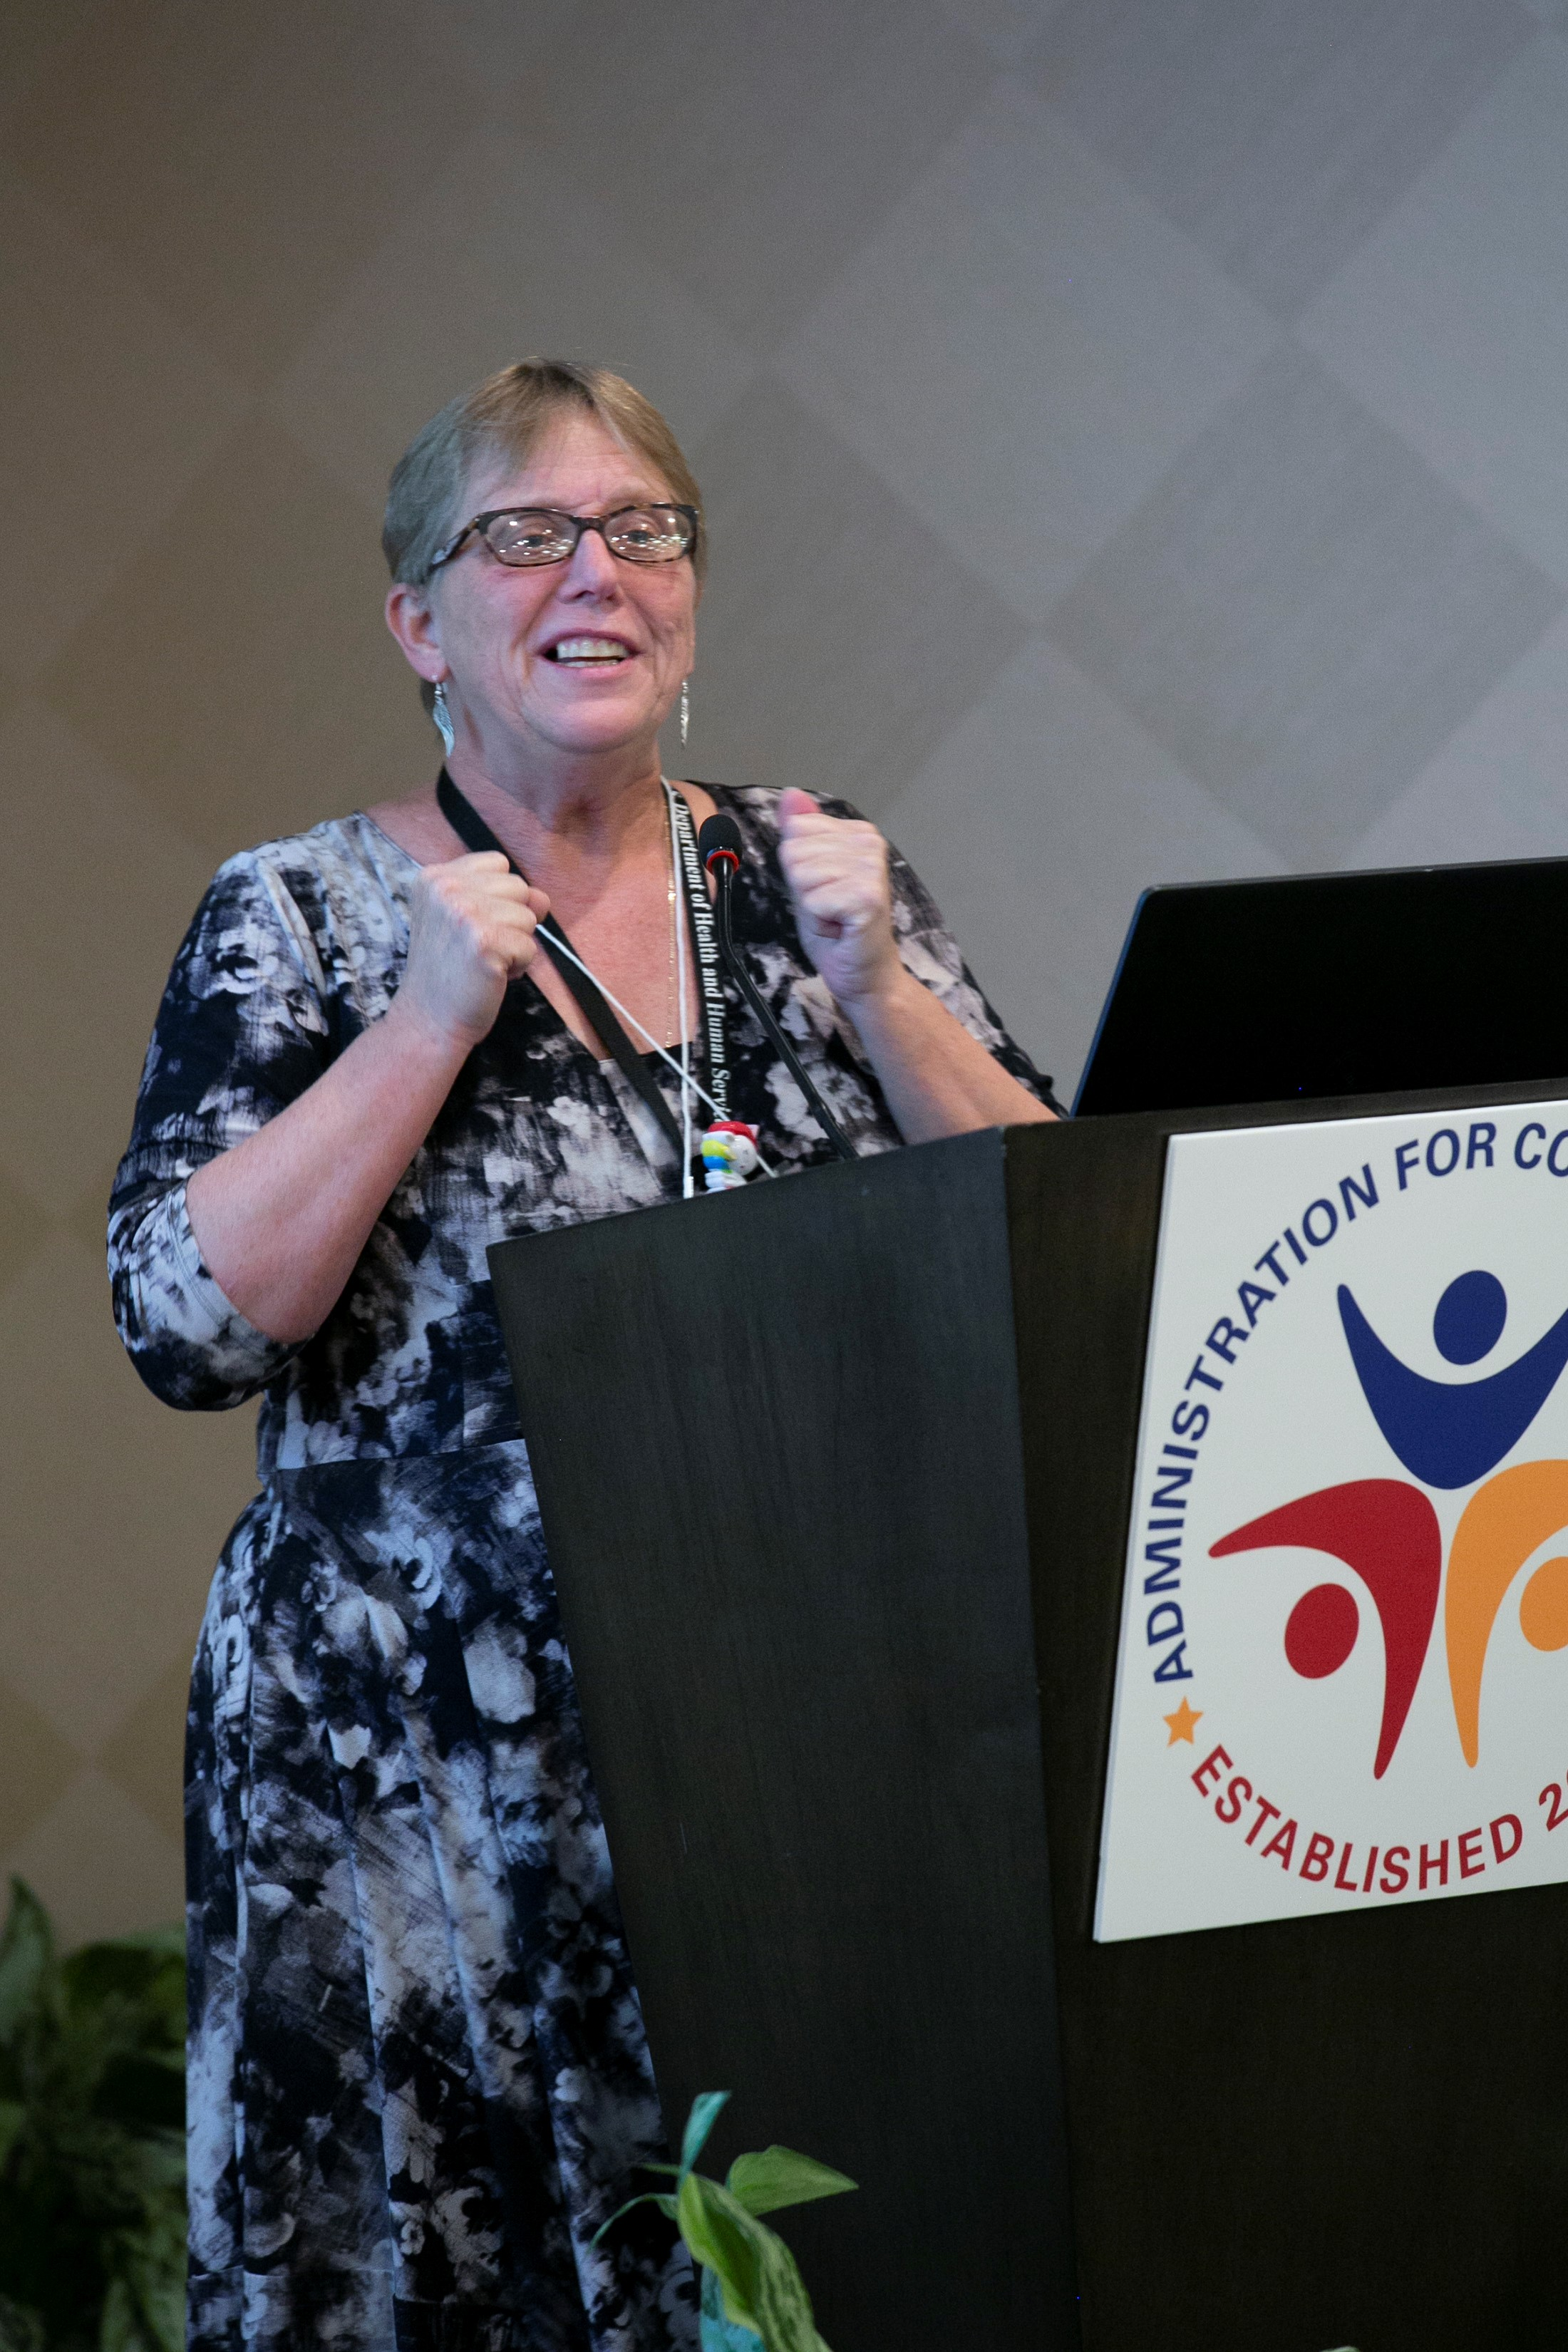 Lori Stalbaum, Administration for Community Living welcoming the RAISE Family Caregiving Advisory Council on August 28, 2019